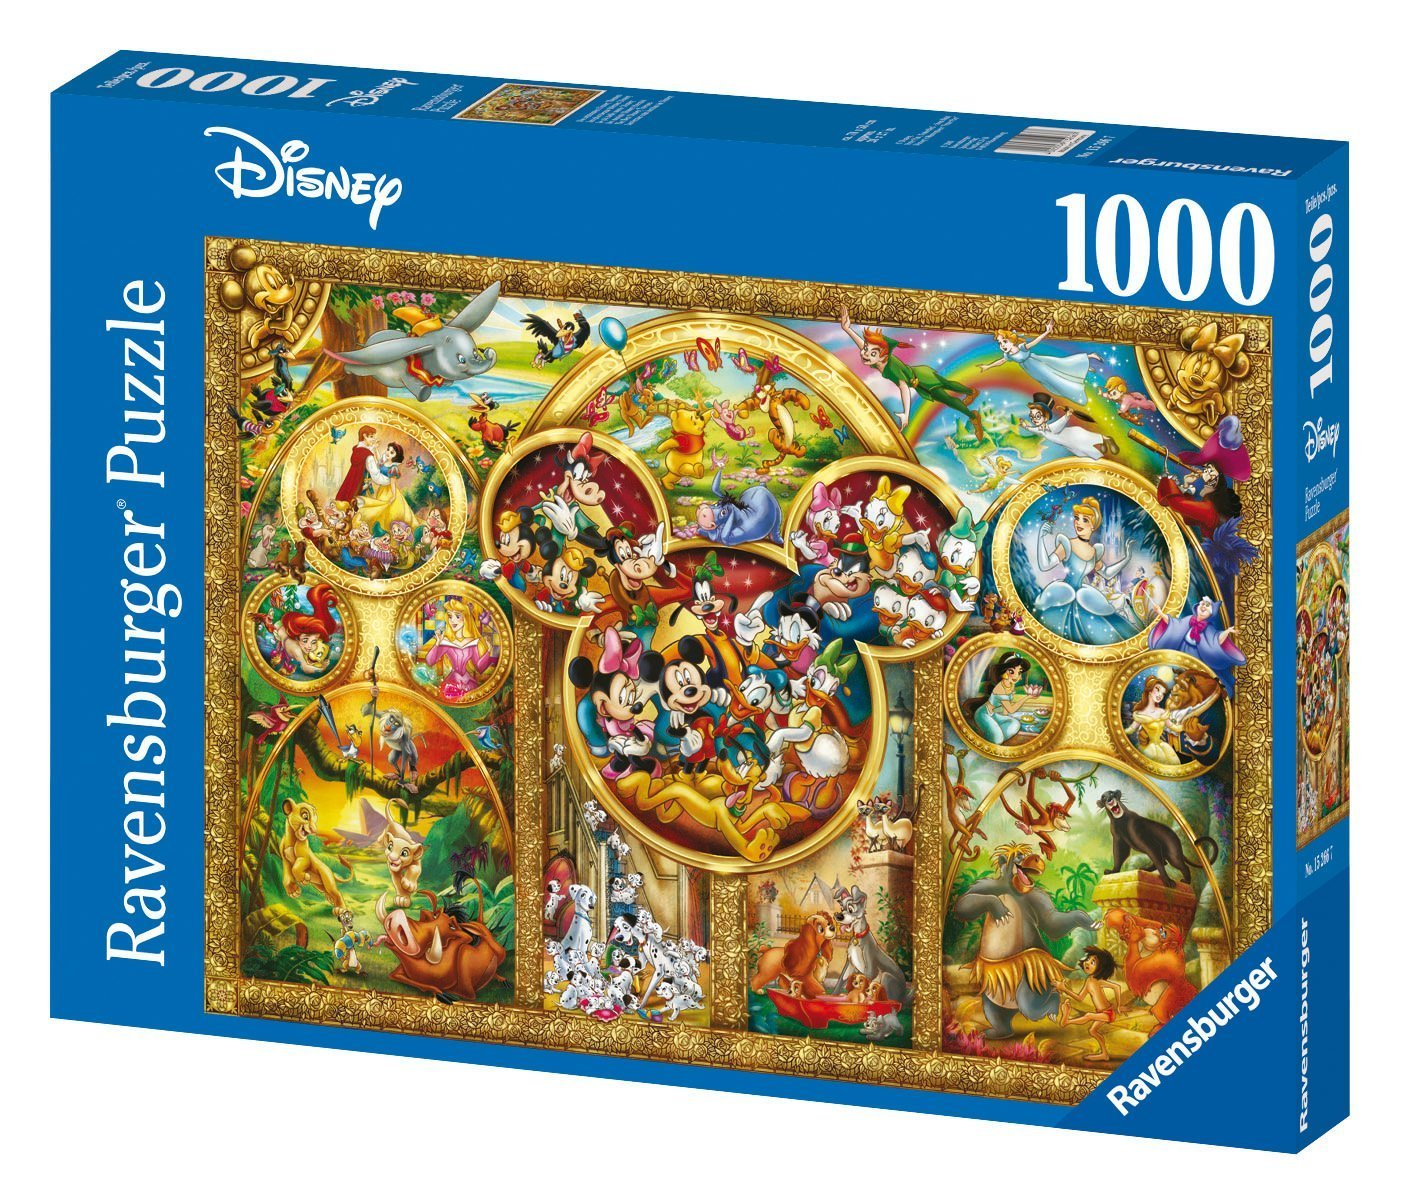 Disney Masterpiece Panarama Puzzle 1000 Piece Professional Soft Click Jigsaw Ages 12+